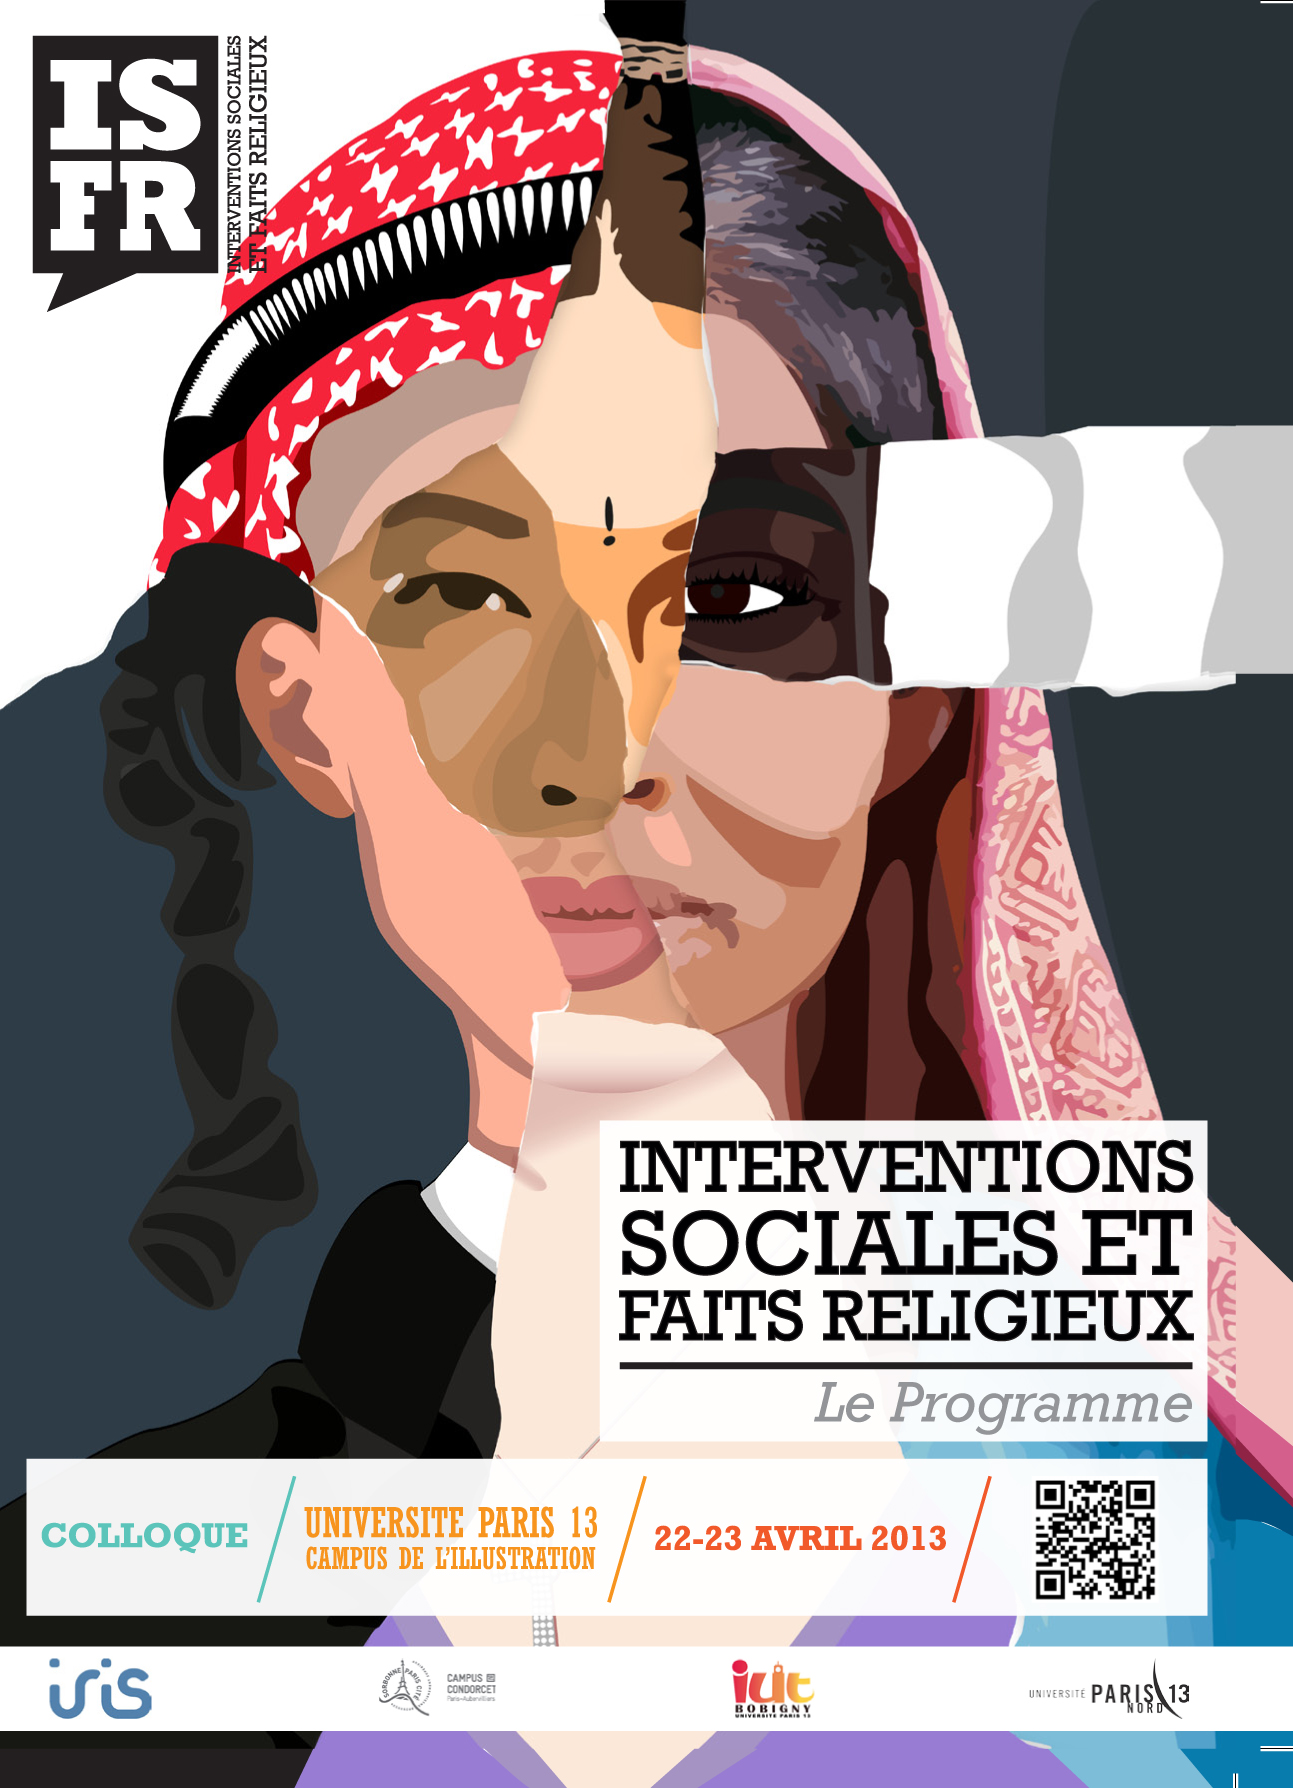 ISFR-1 Interventions sociales avril 2013-1